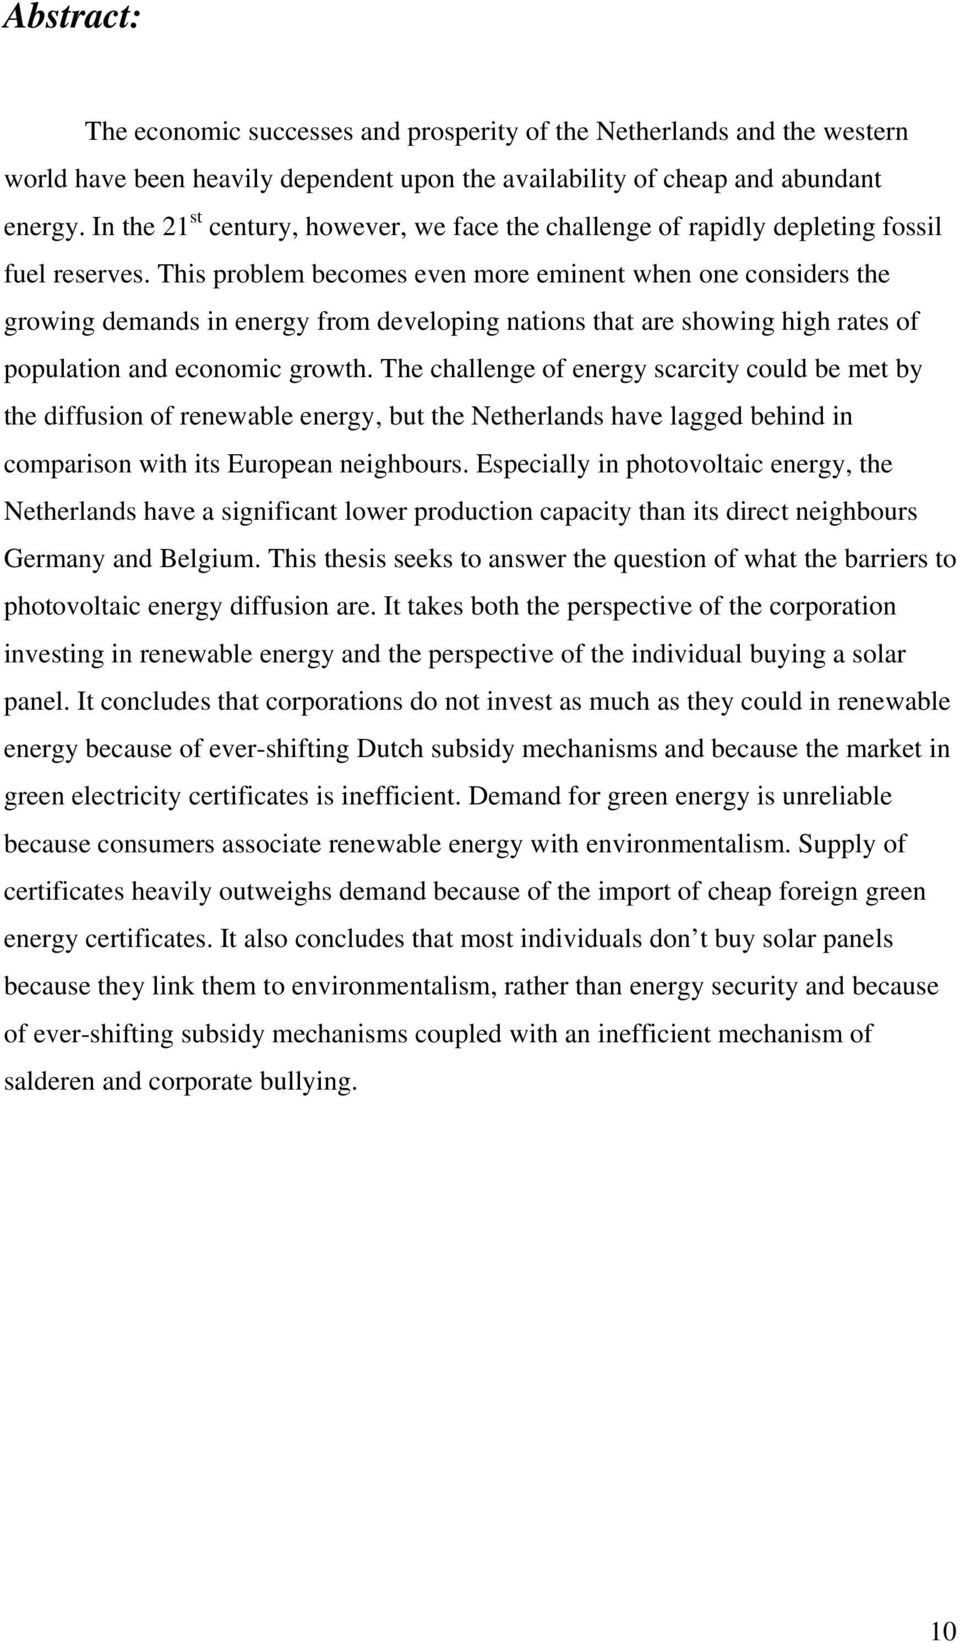 This problem becomes even more eminent when one considers the growing demands in energy from developing nations that are showing high rates of population and economic growth.